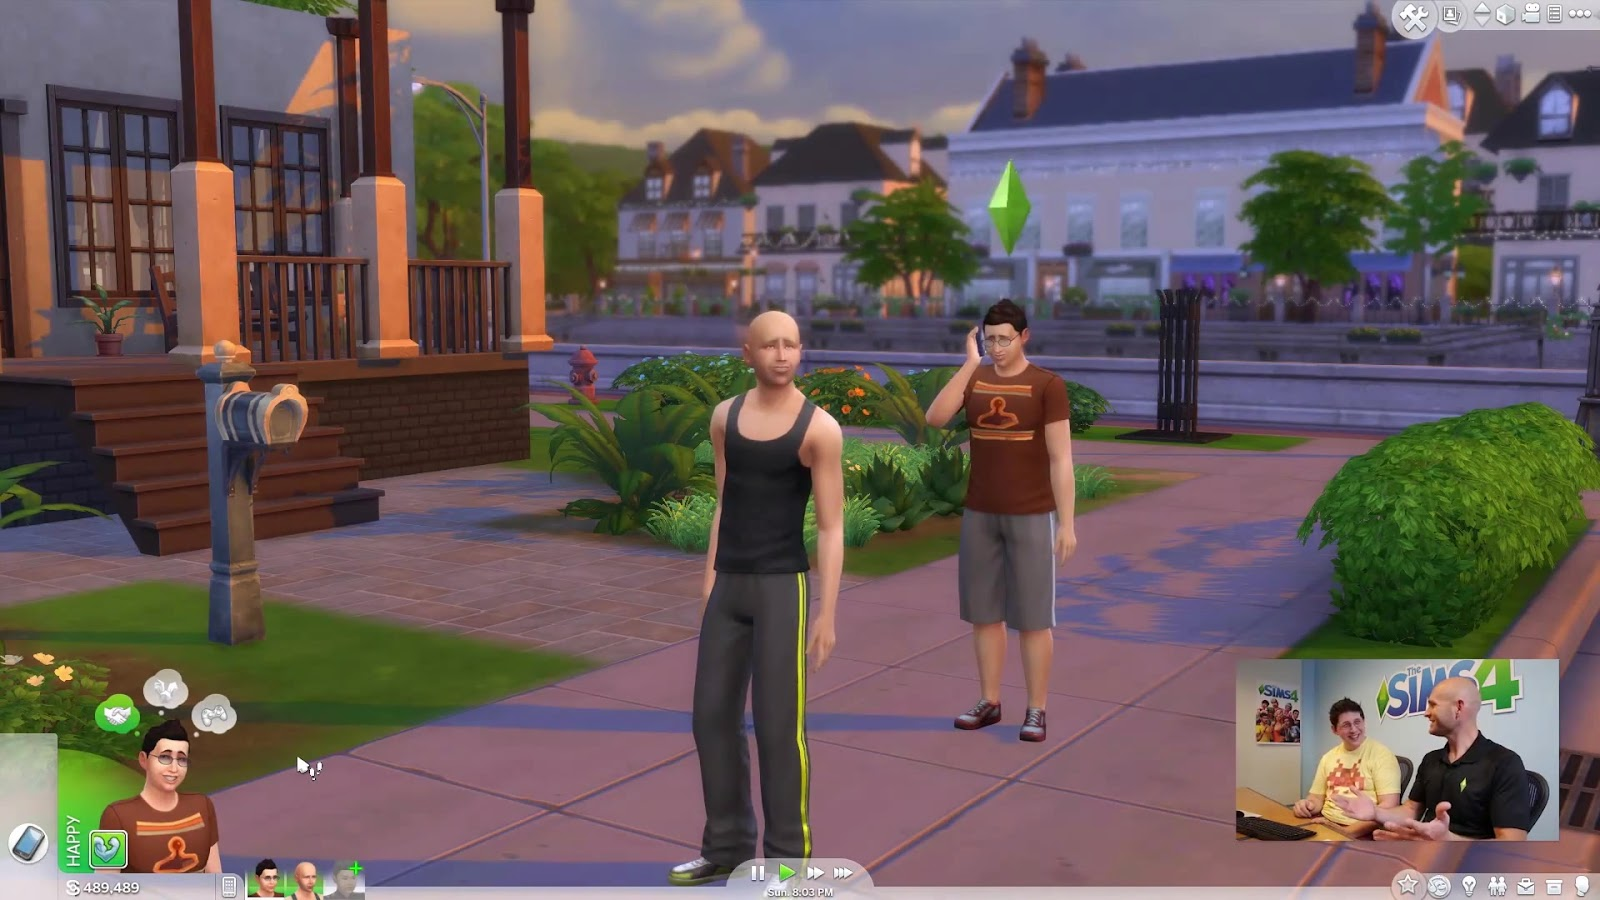 Games similar to Sims 4: what to play